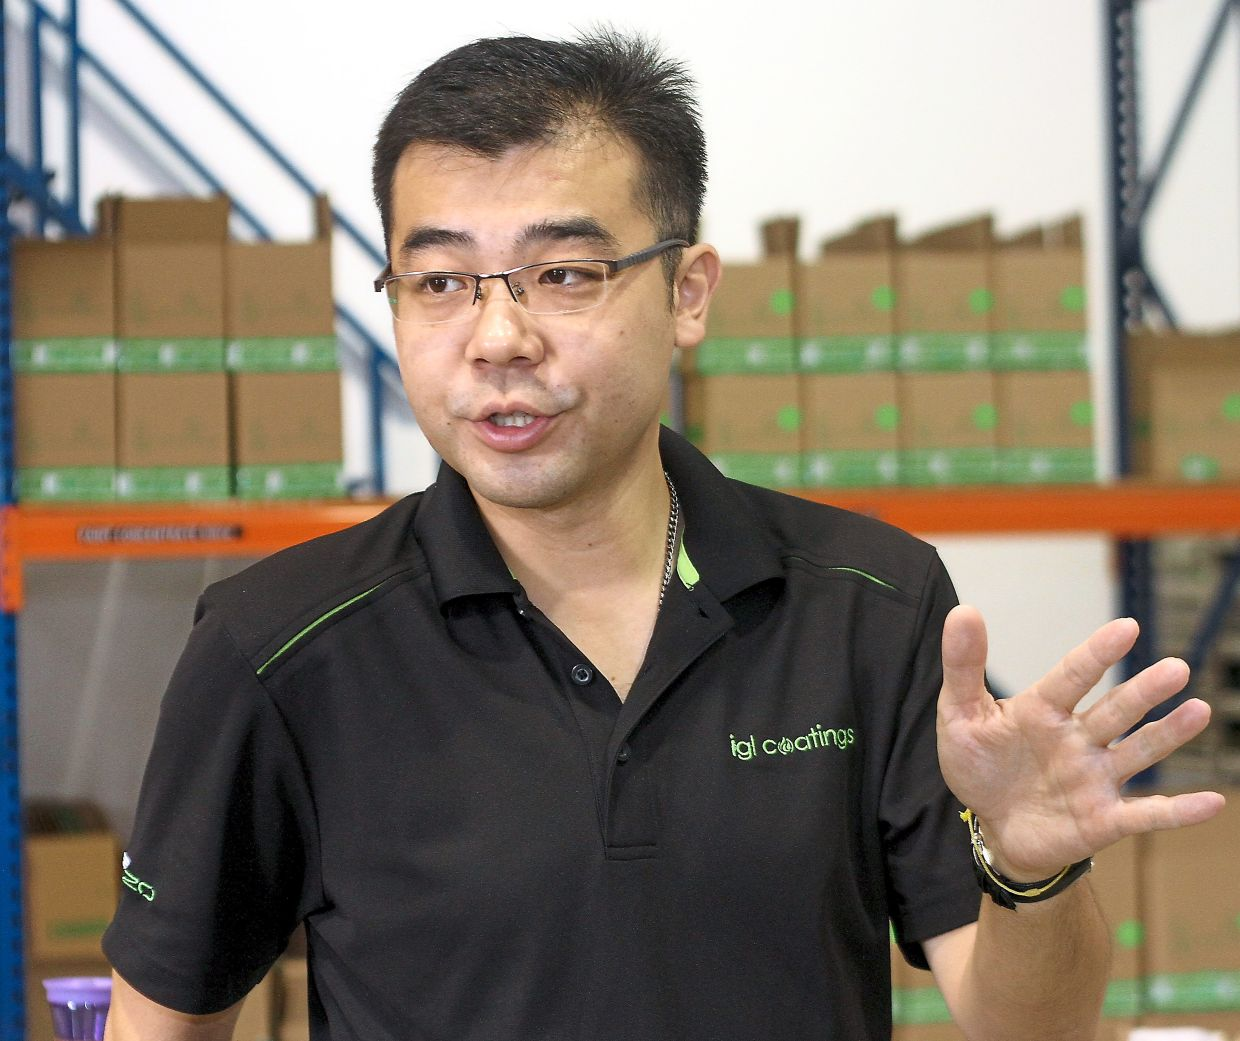 IGL will ramp up R&D into virus eliminating coatings to return to higher margin products, says Keong.